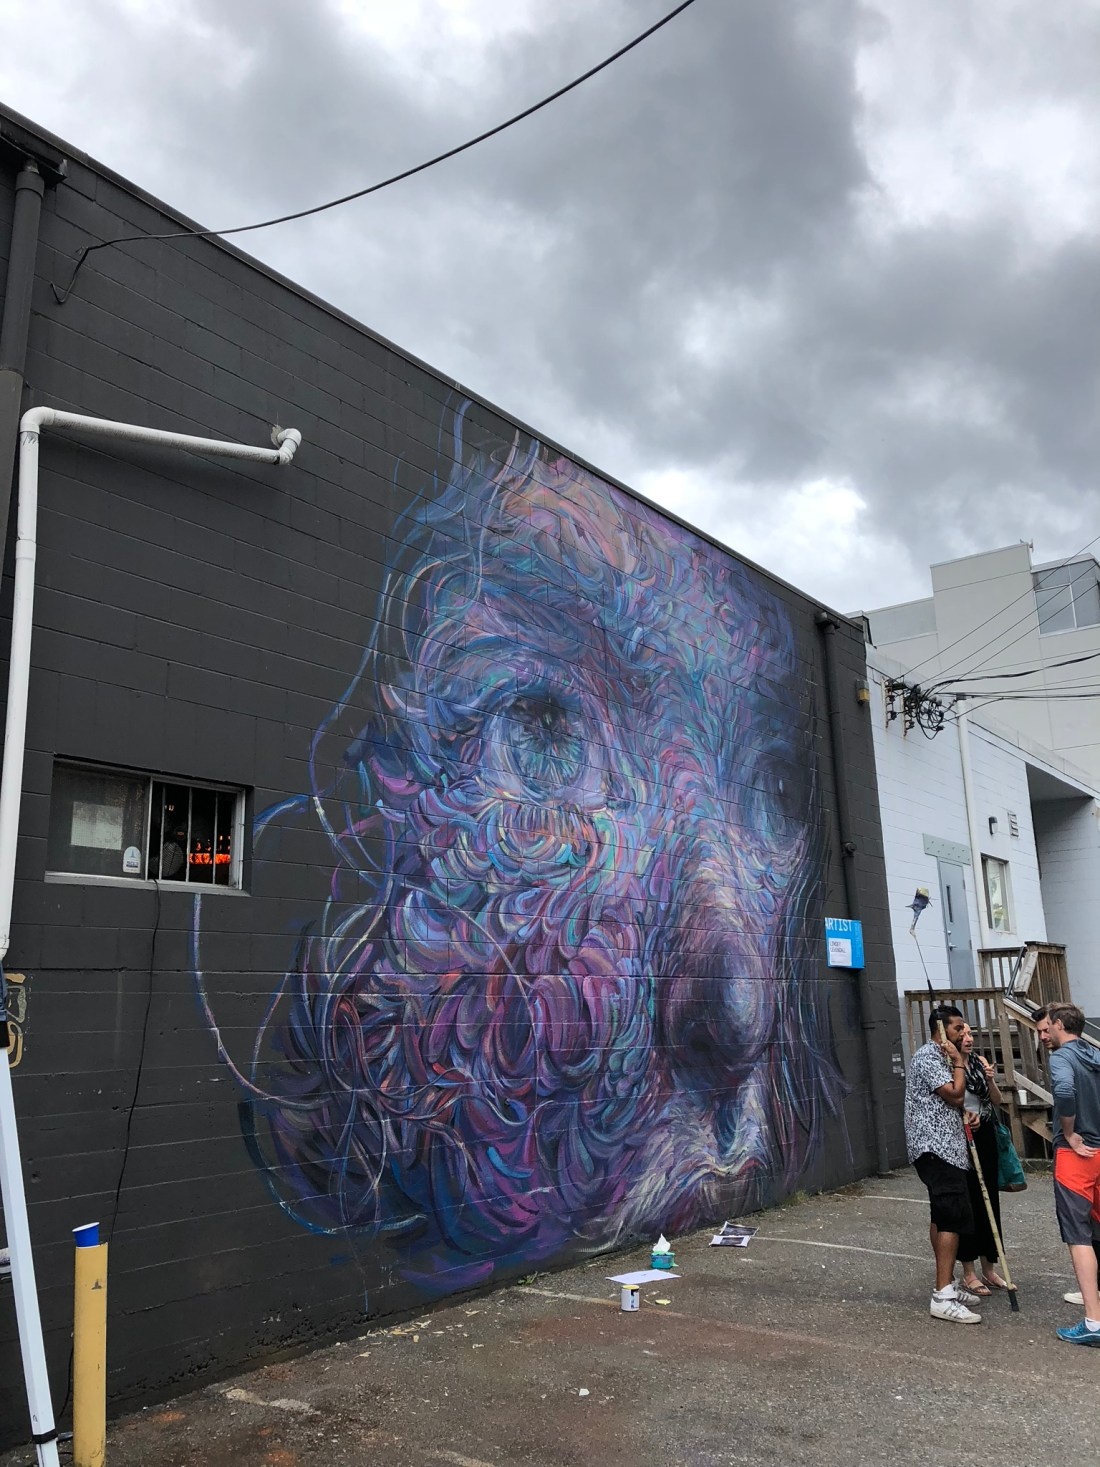 Mysterious street art at Vancouver Mural Festival